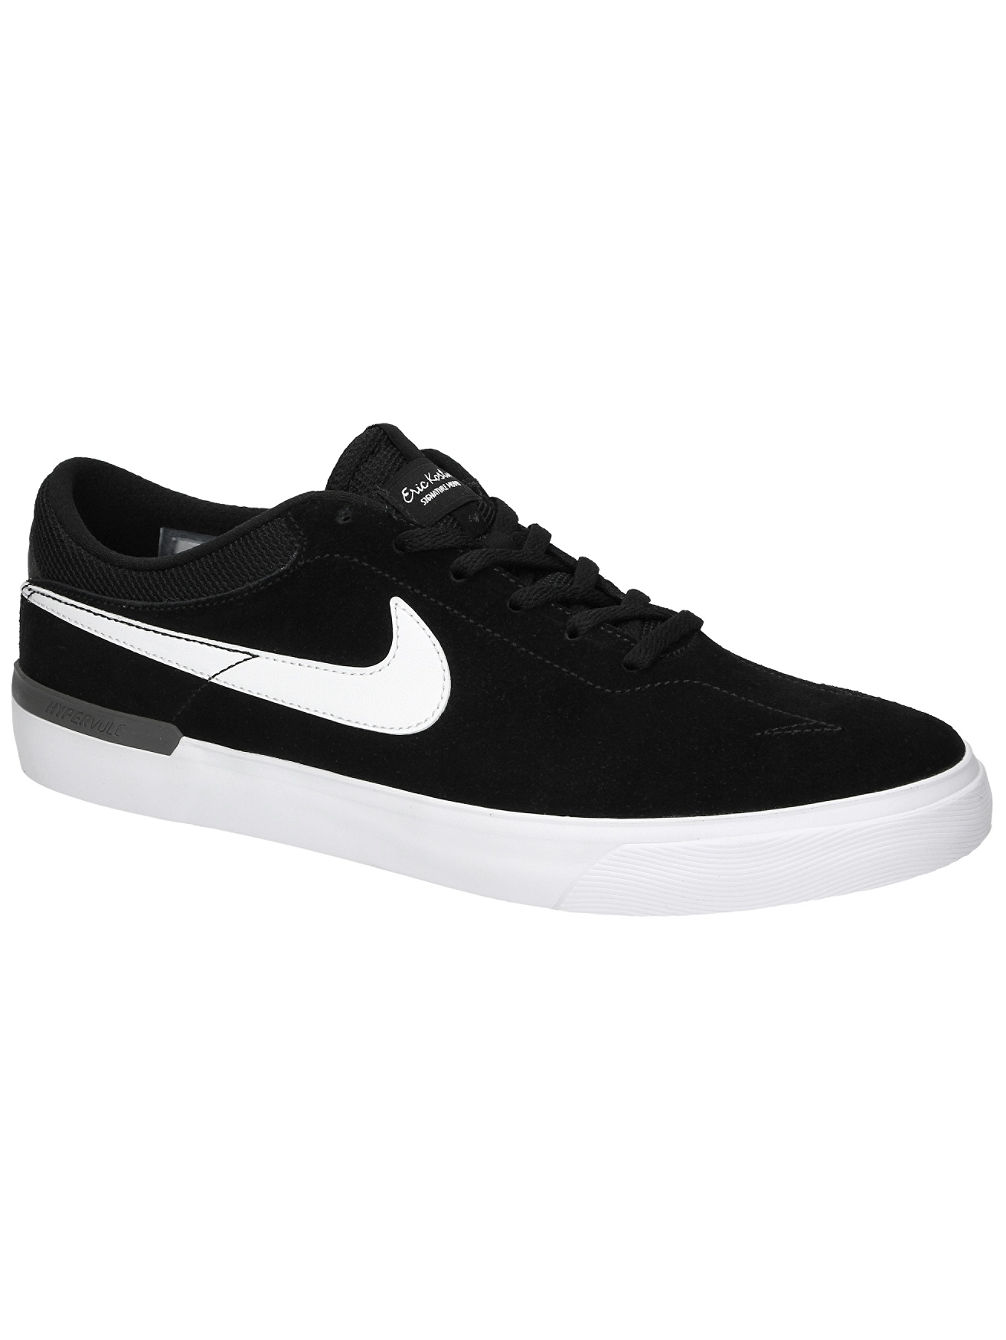 Koston Hypervulc Skate Shoes